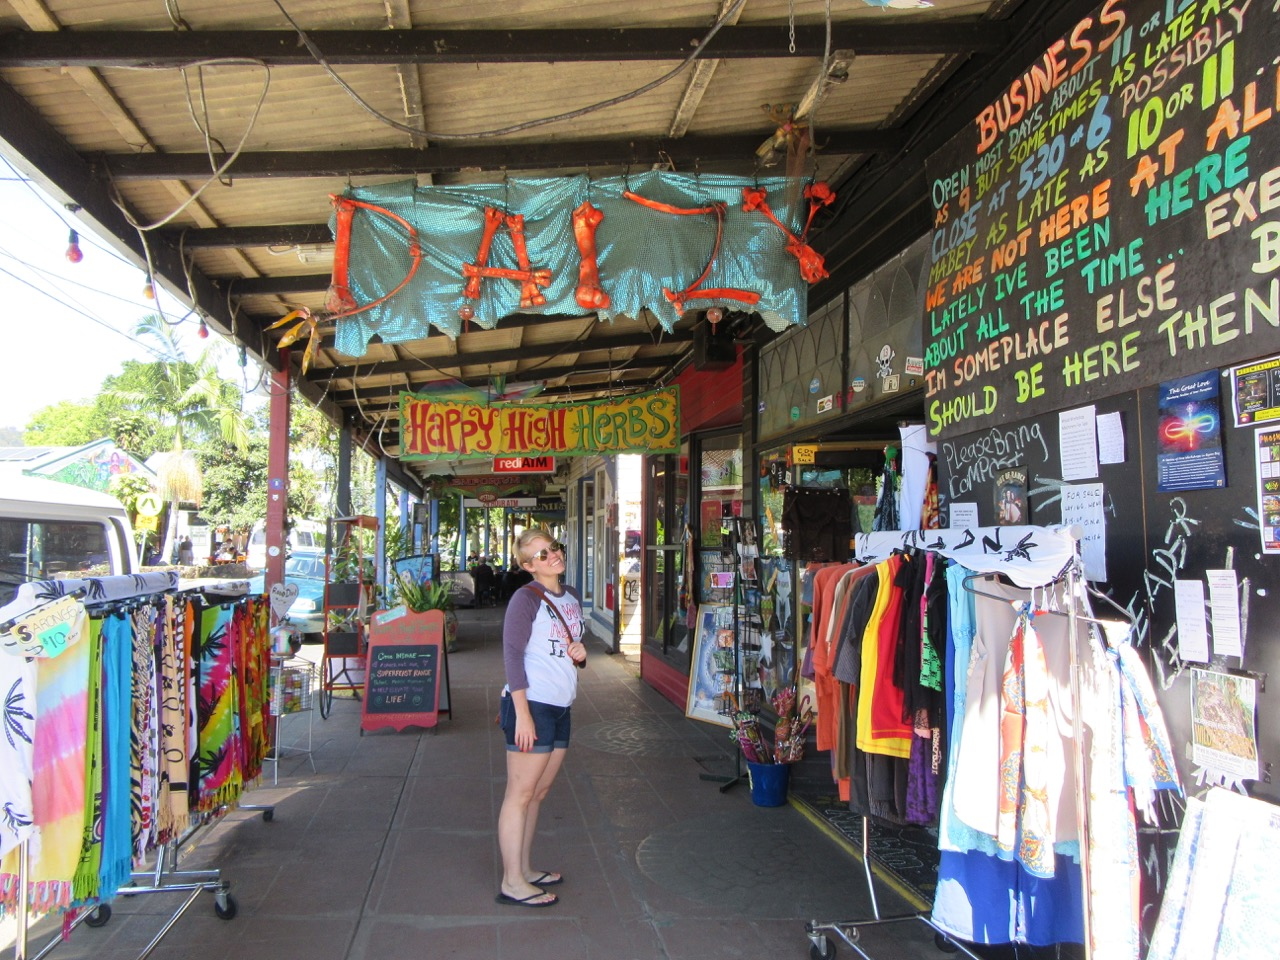 Patricia on the streets of Nimbin.